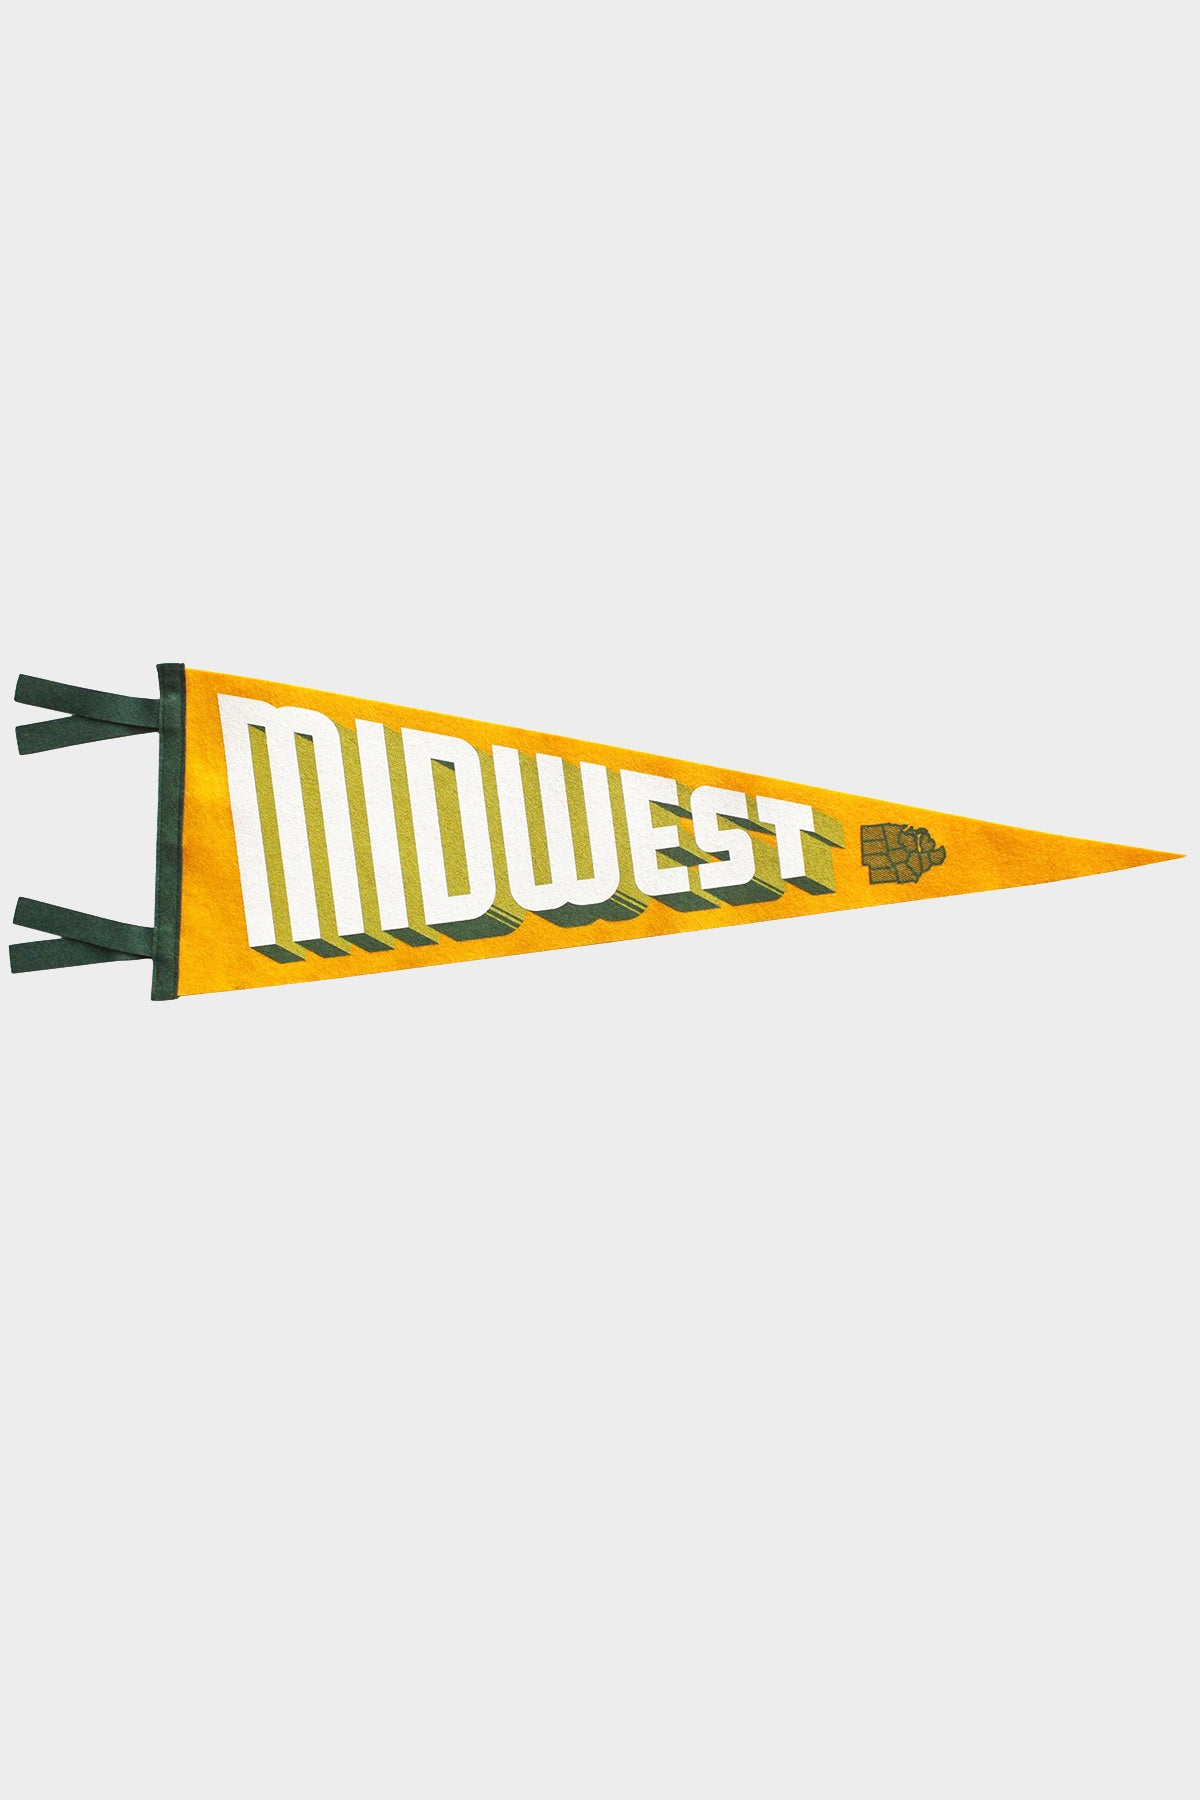 Midwest Pennant